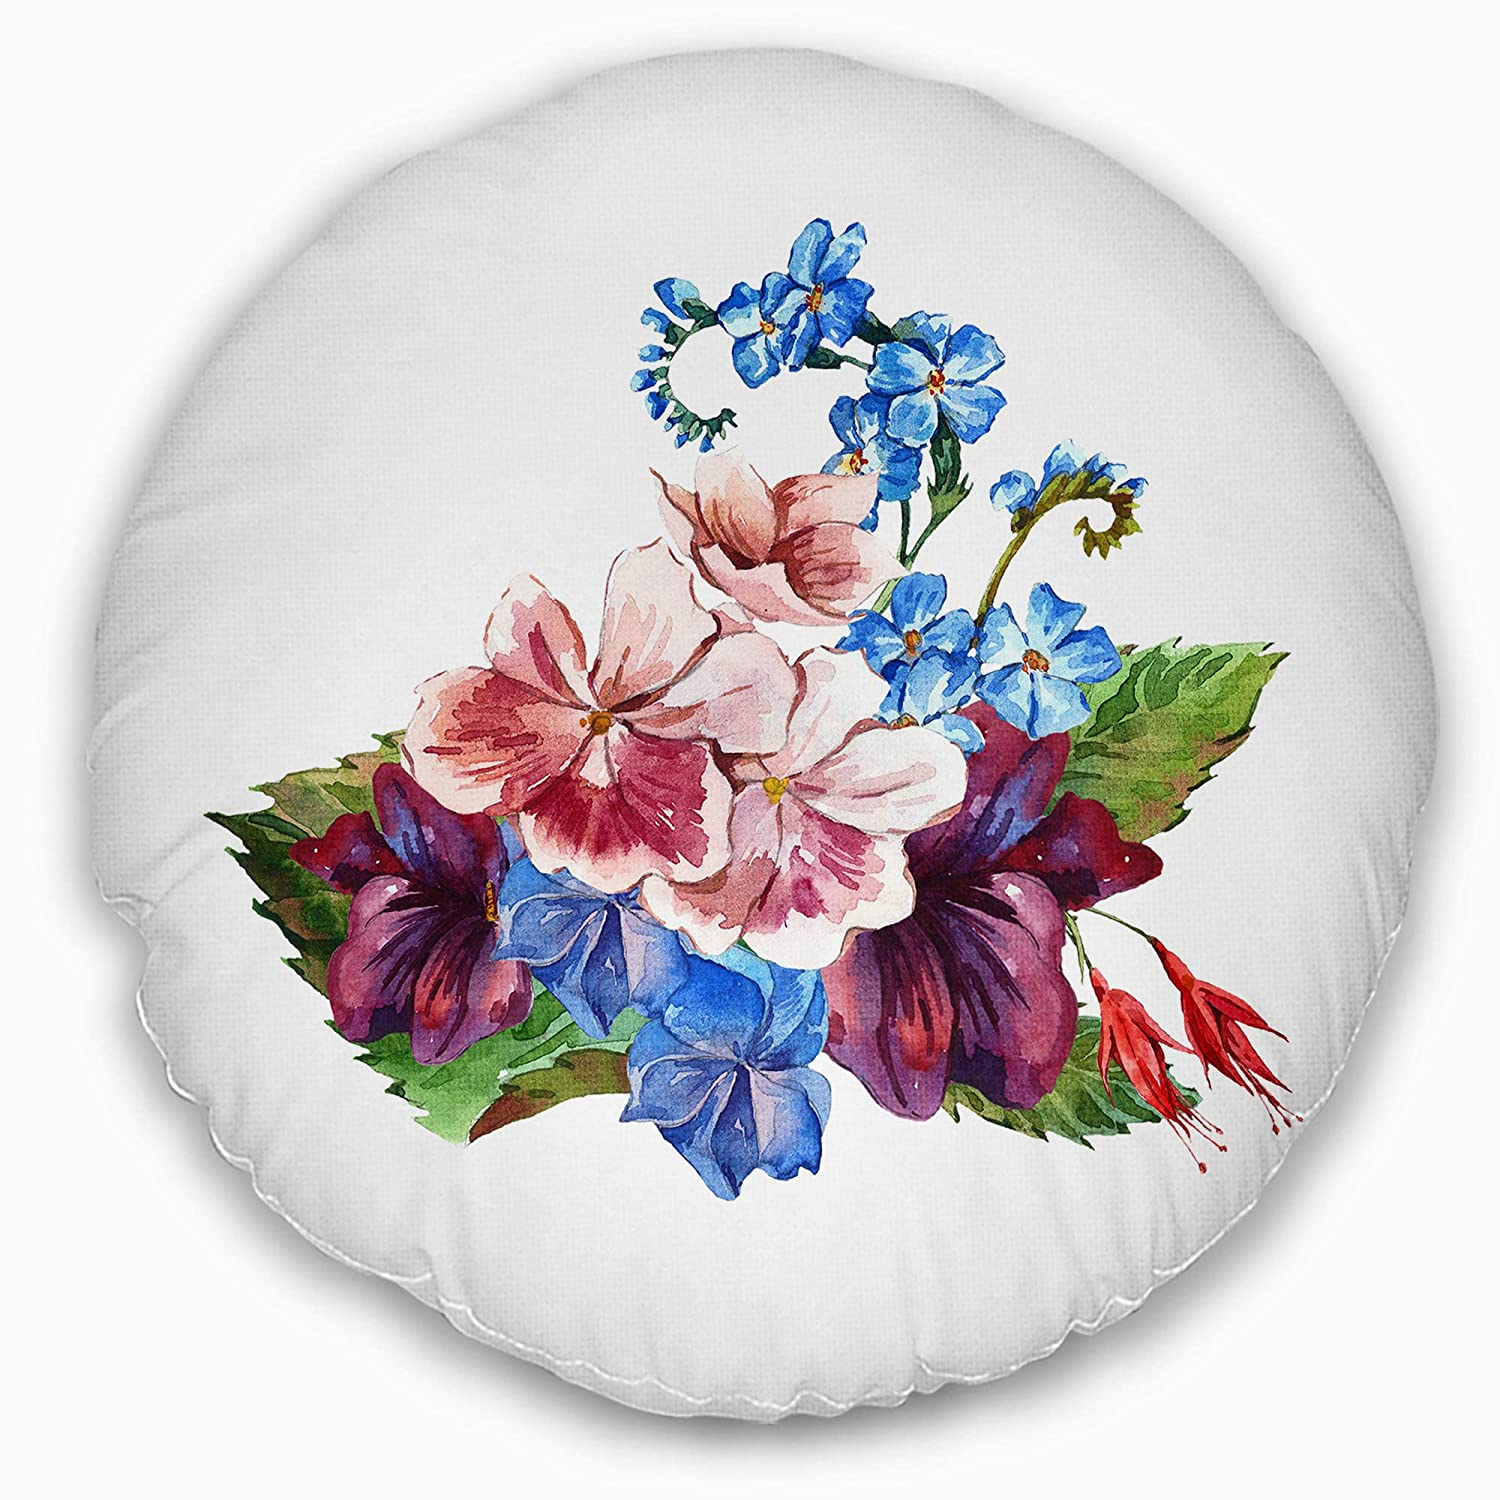 Insert Printed On Both Side Sofa Throw Pillow 20 Designart CU13302-20-20-C Vintage Watercolor Floral Round Cushion Cover for Living Room